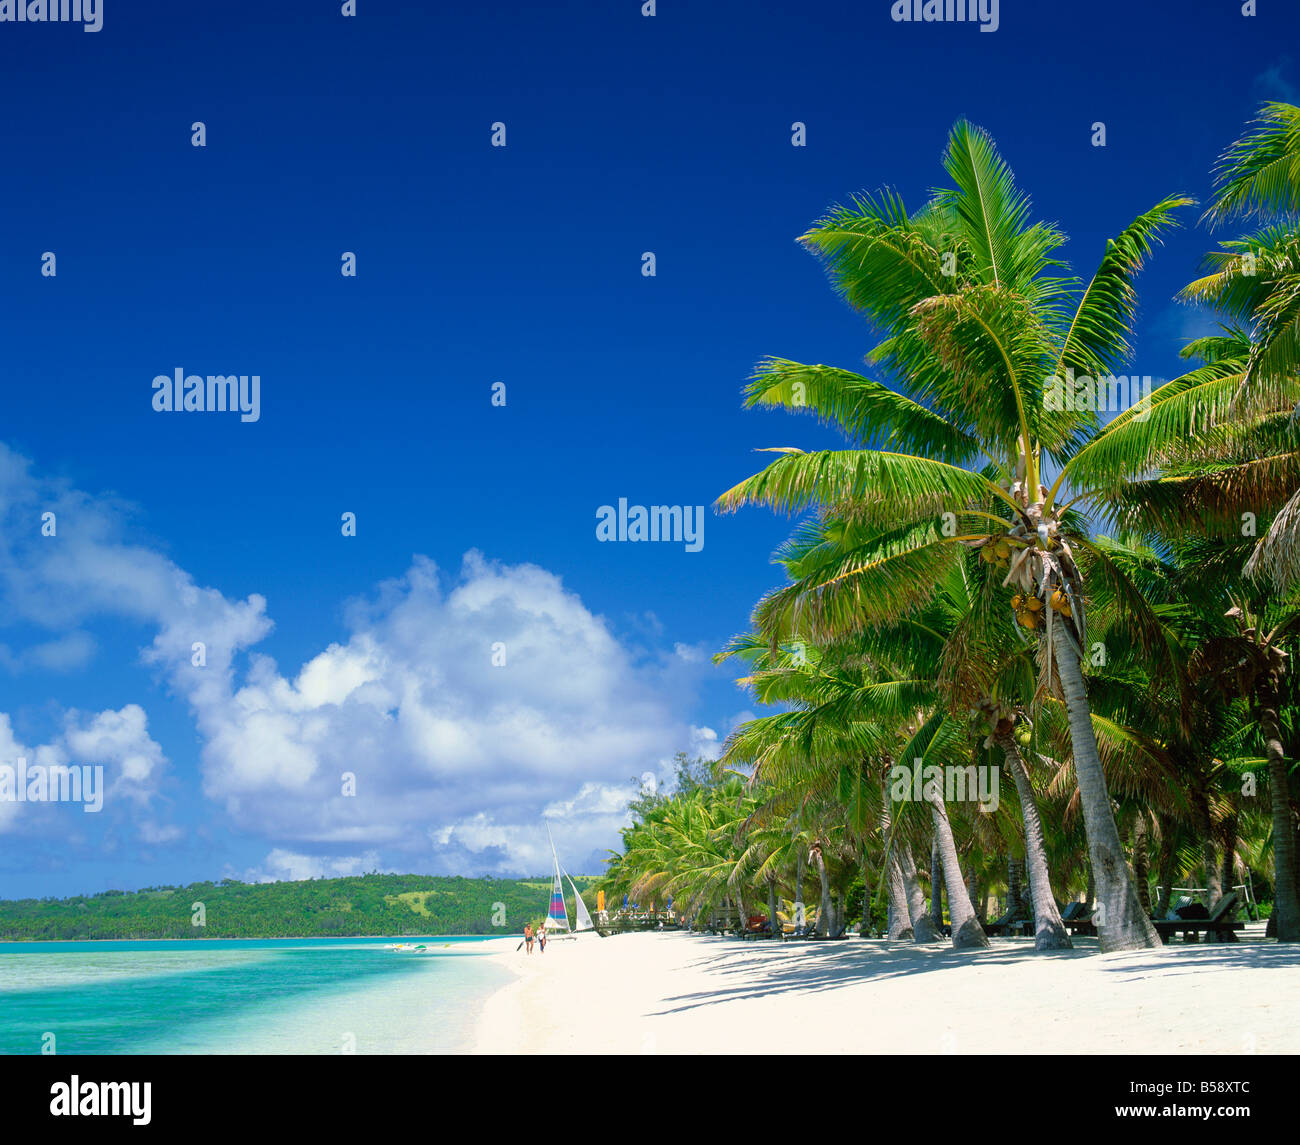 Tourists on the beach at Aitutaki in the Cook Islands Polynesia Pacific Islands Pacific - Stock Image